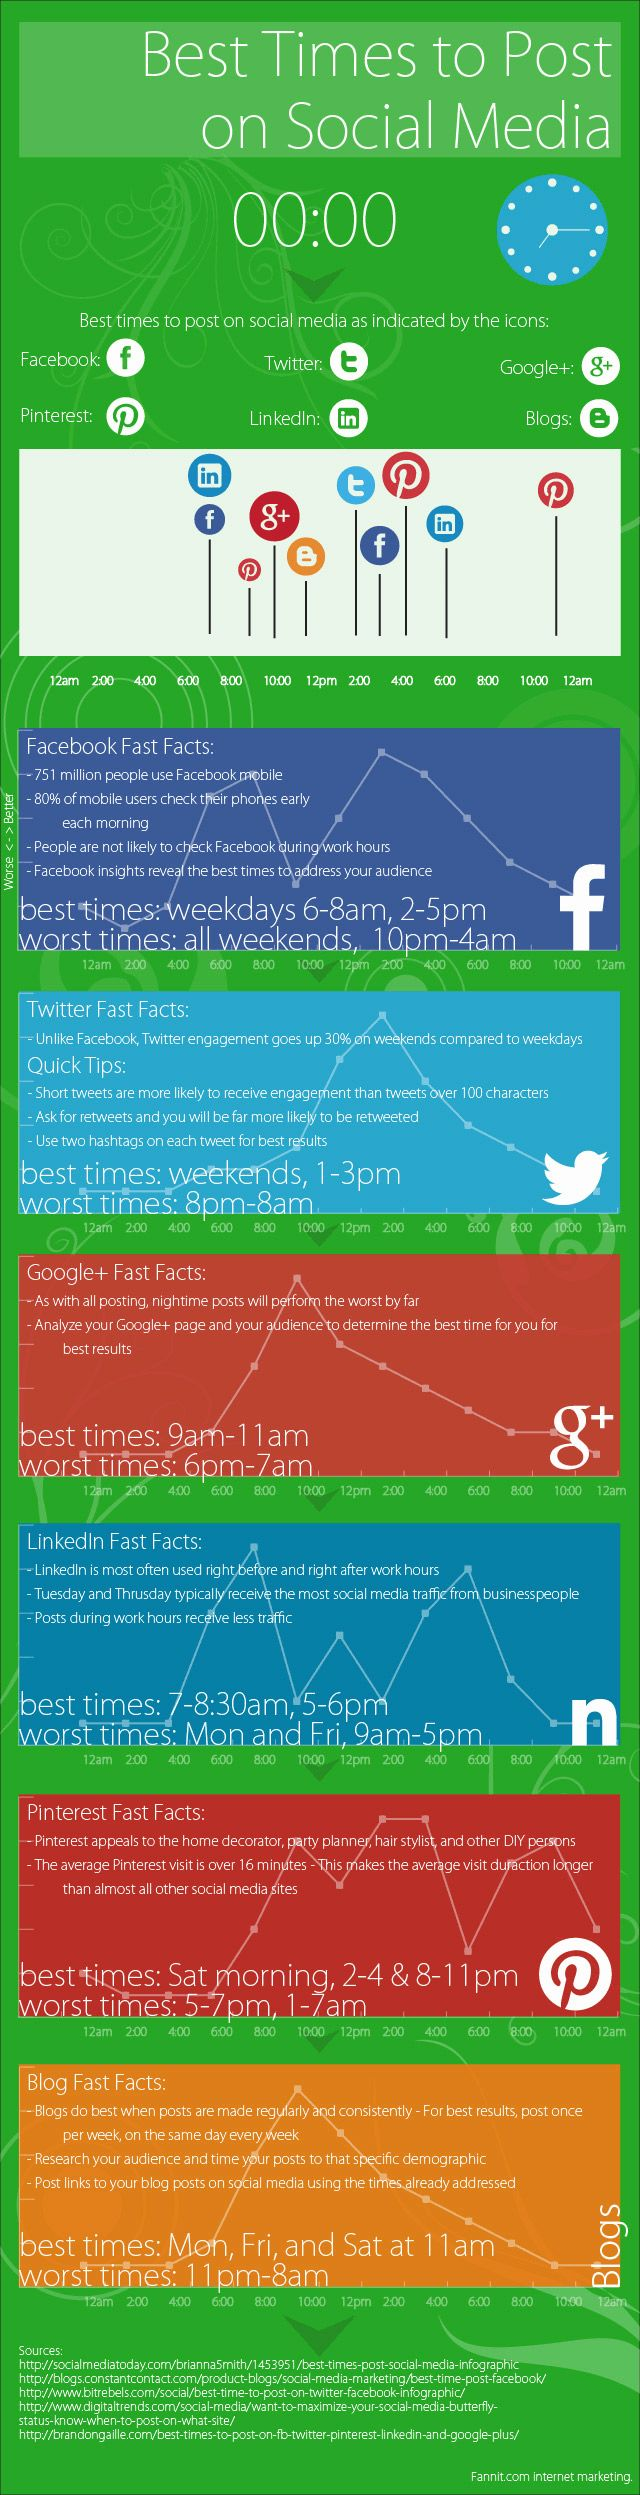 A Guide to the Best Times to Post on Social Media (Infographic)